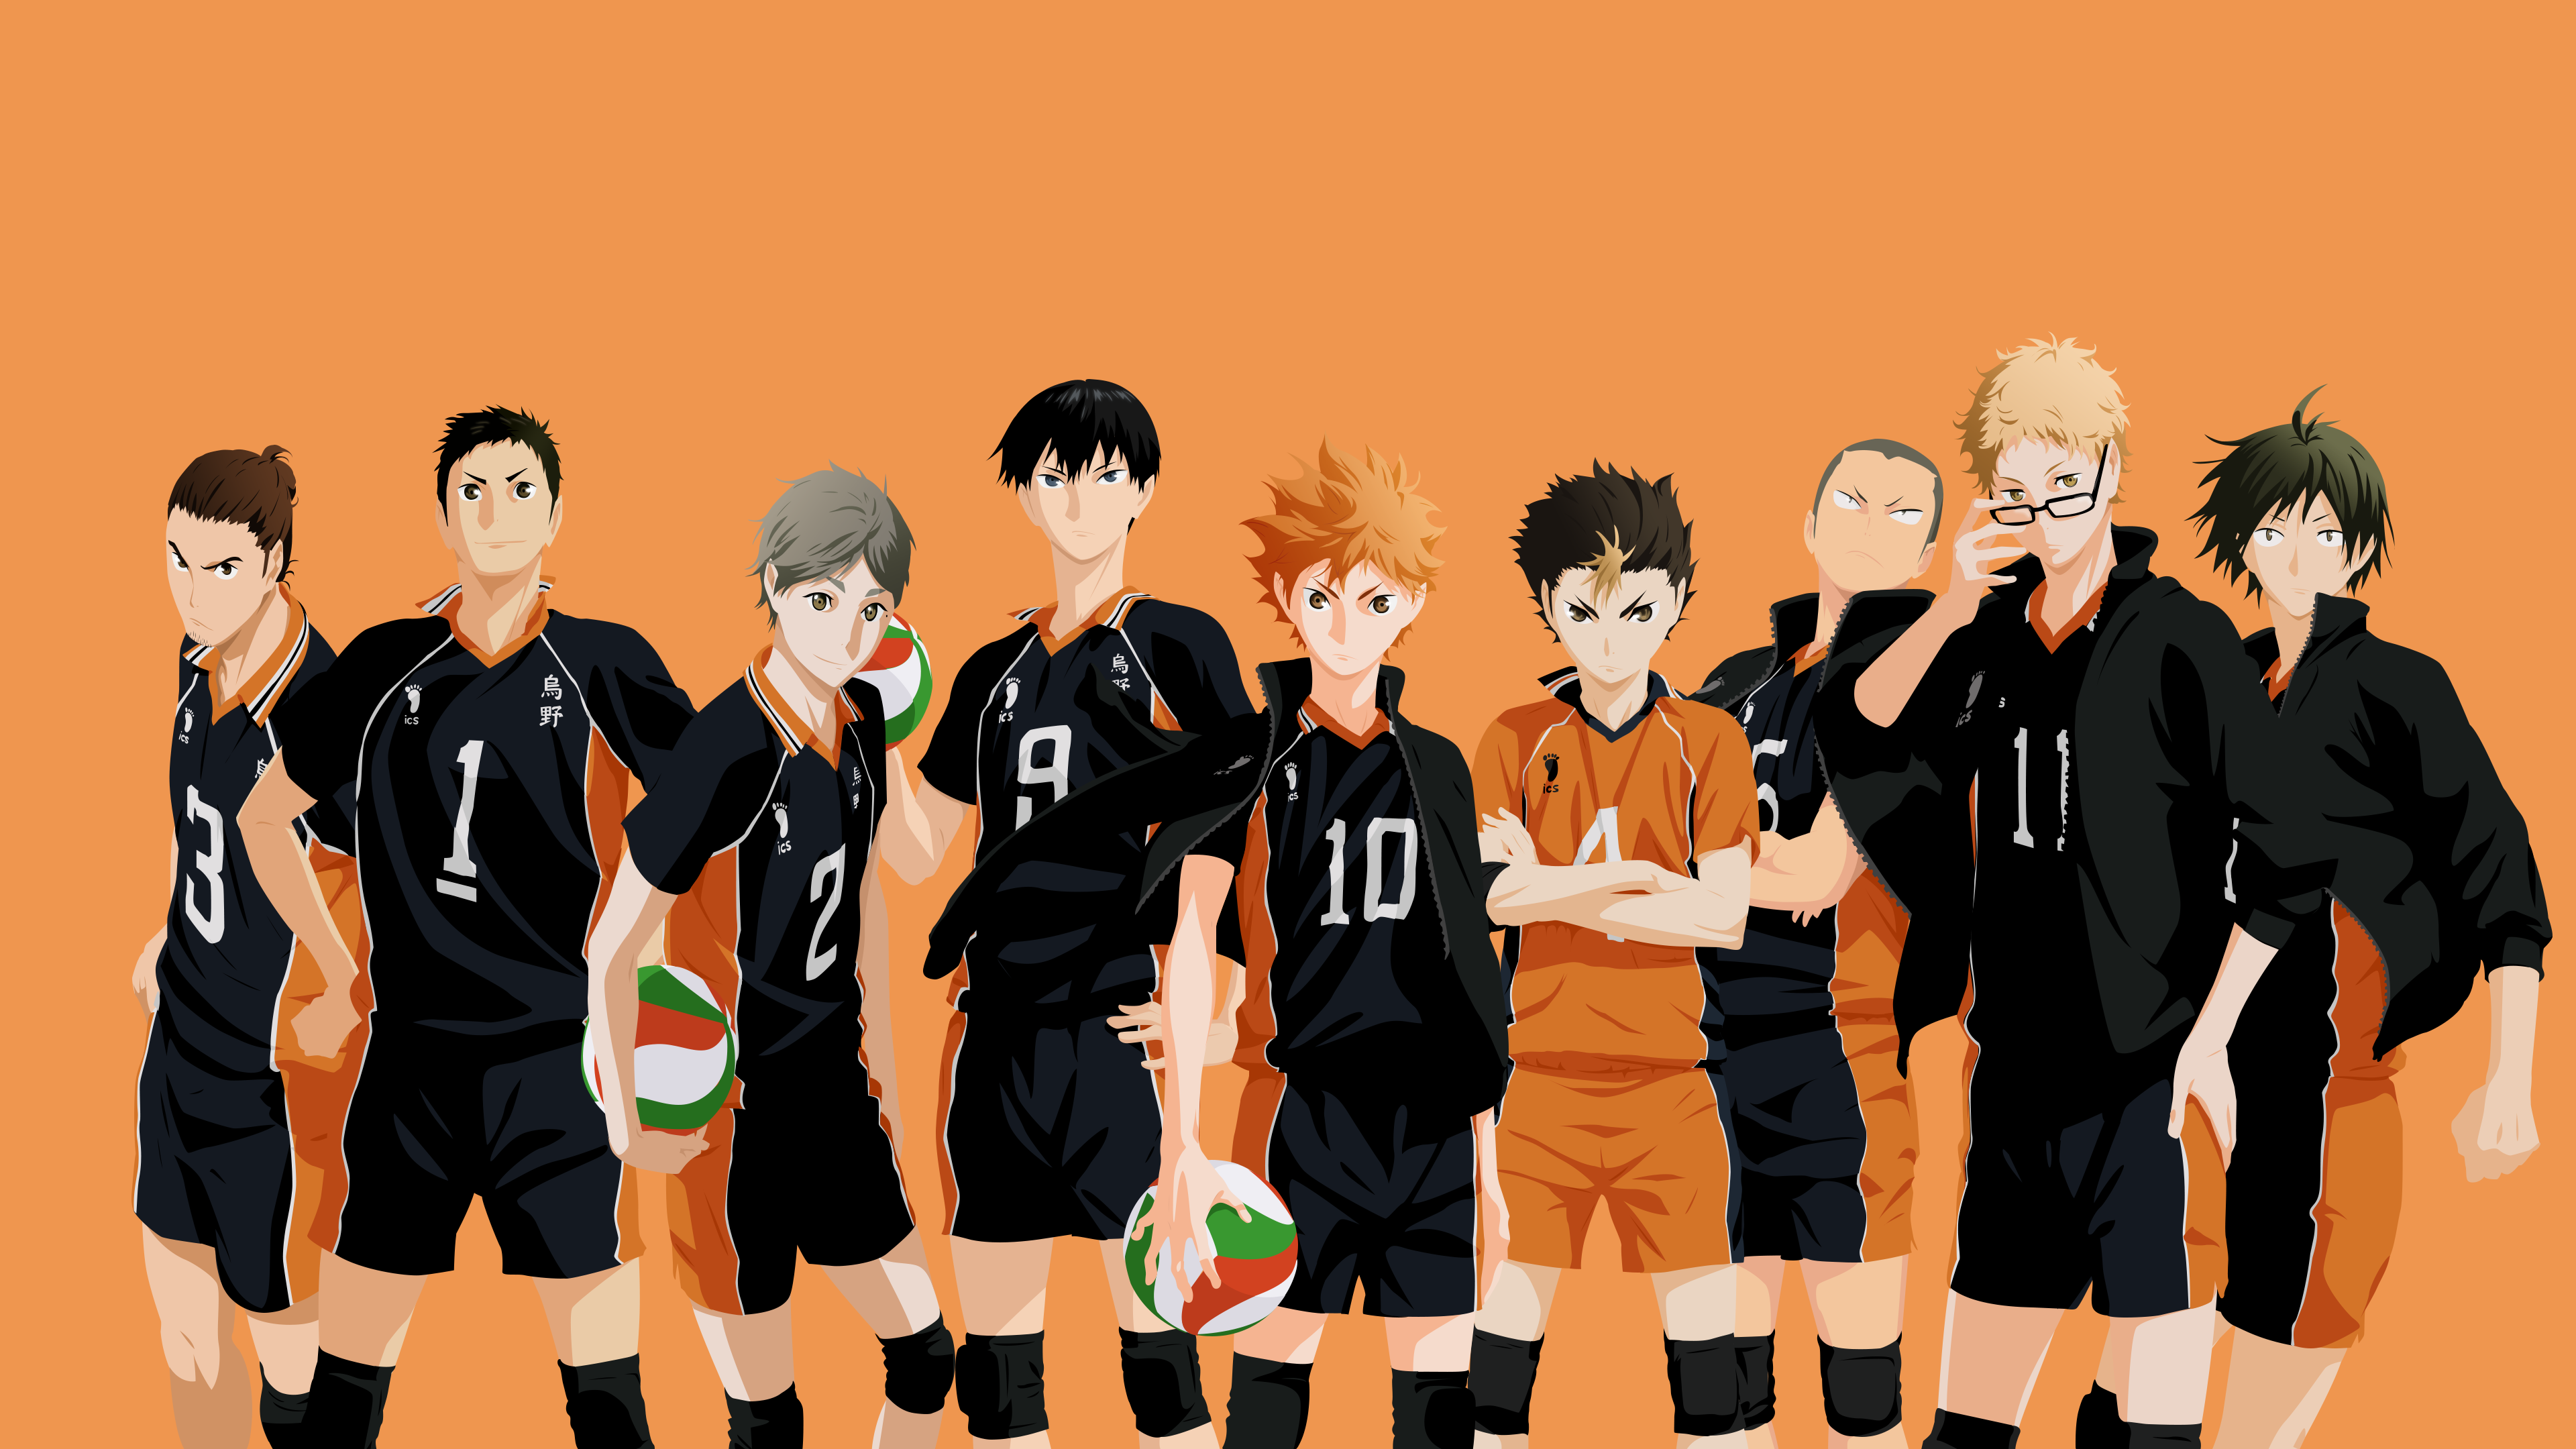 Karasuno Volleyball Team Desktop Wallpaper In 2020 Haikyuu Wallpaper Cute Anime Wallpaper Team Wallpaper